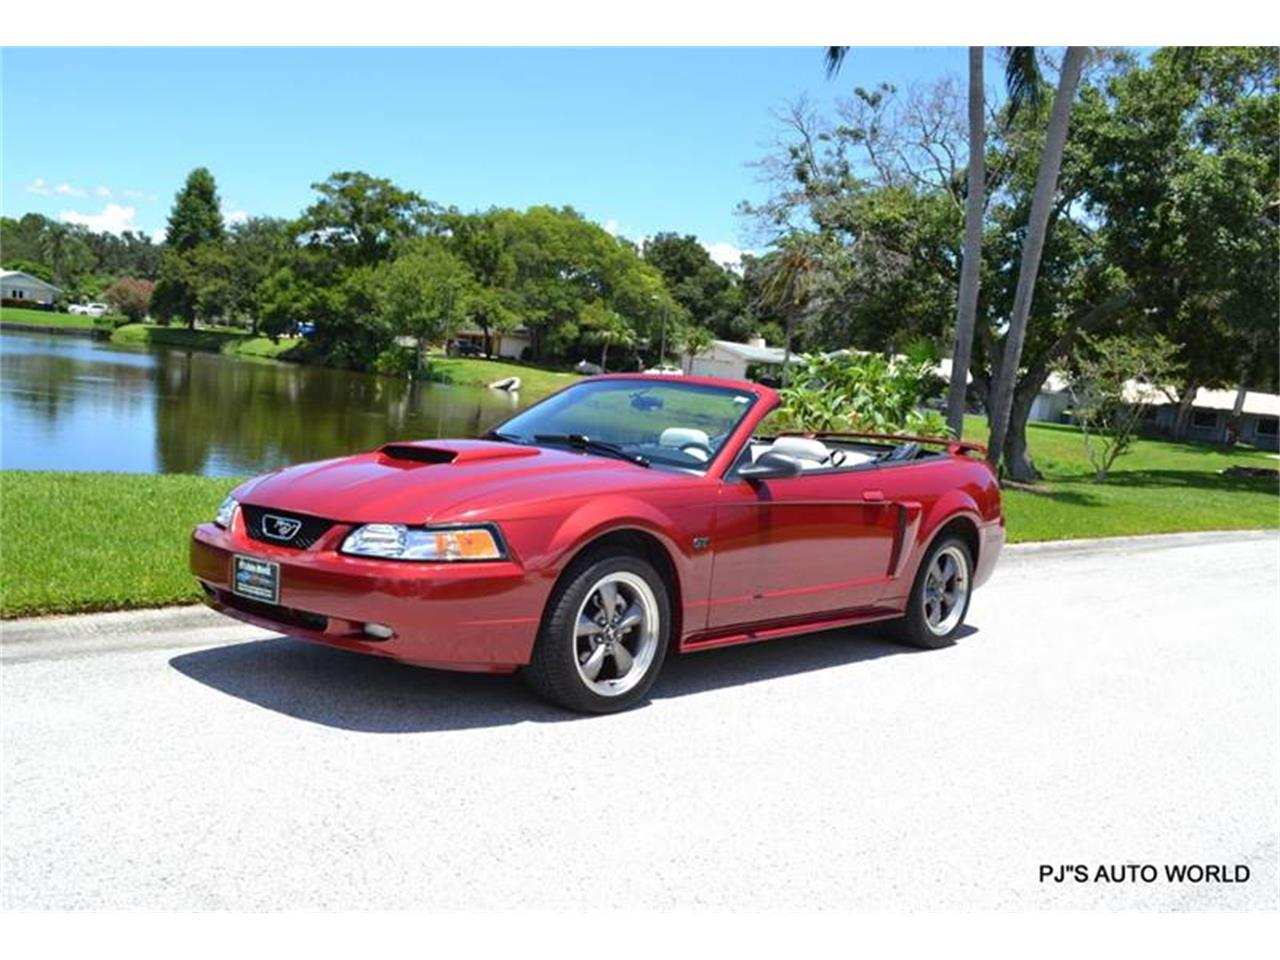 Large Picture of 2003 Mustang located in Florida - $10,900.00 - LEYO